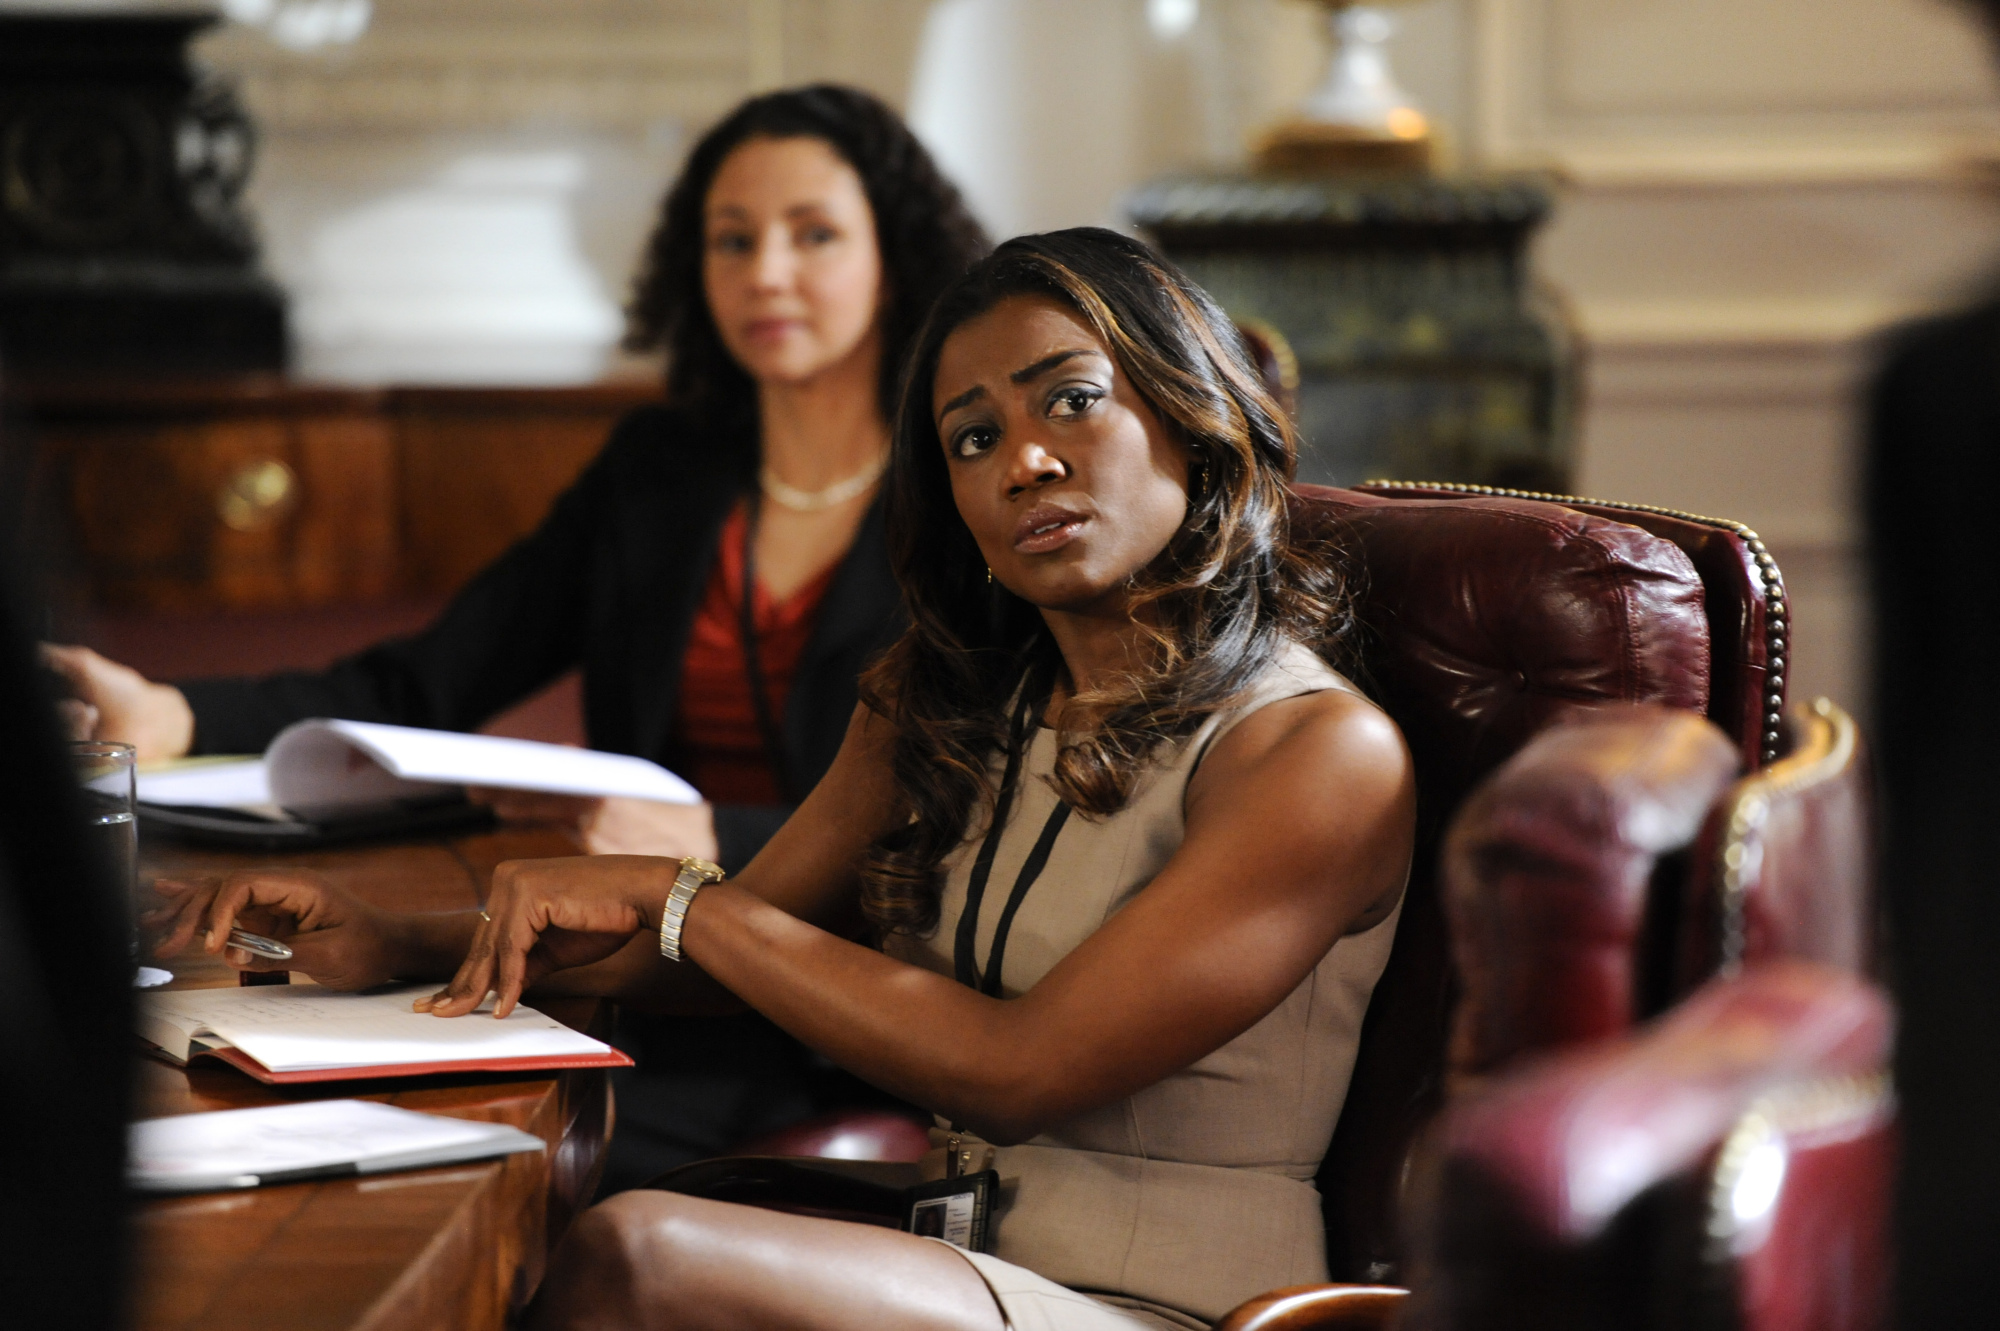 39. Patina Miller received a degree in musical theater from Carnegie Mellon University.